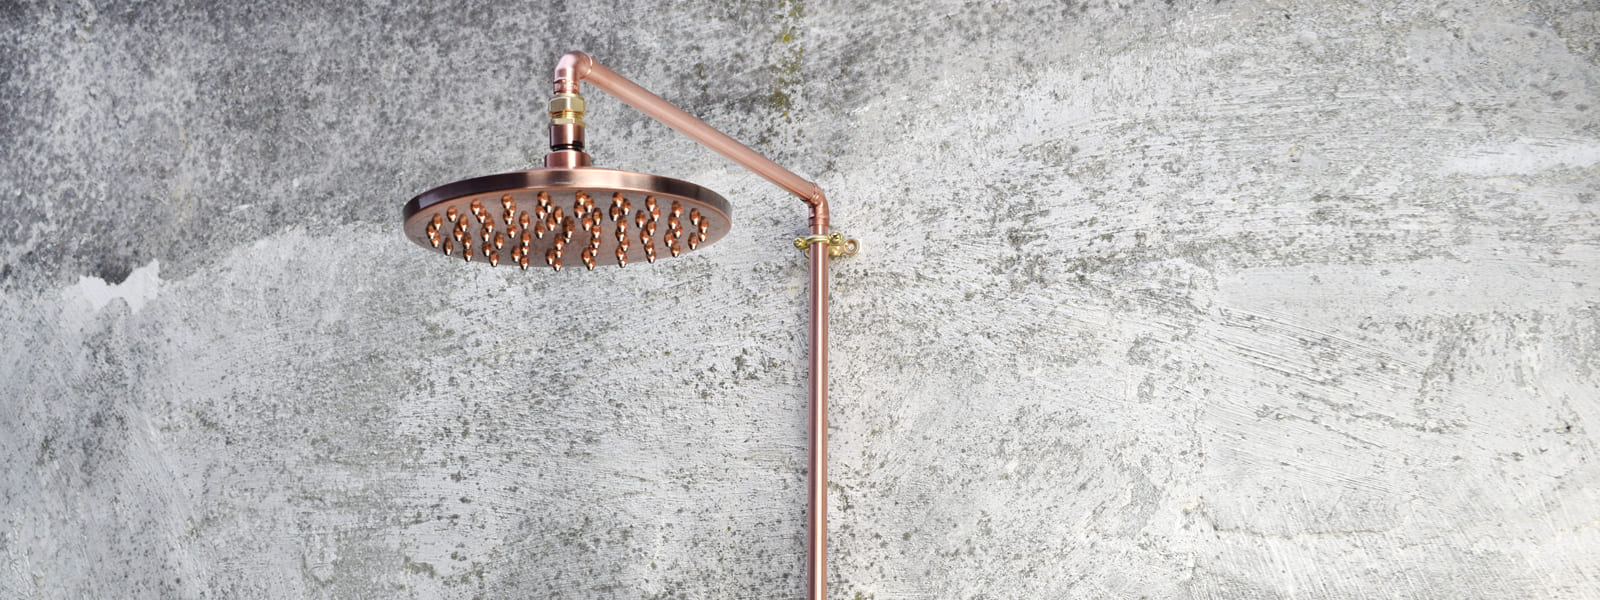 Copper Showers By Proper Copper Design Made In The Uk